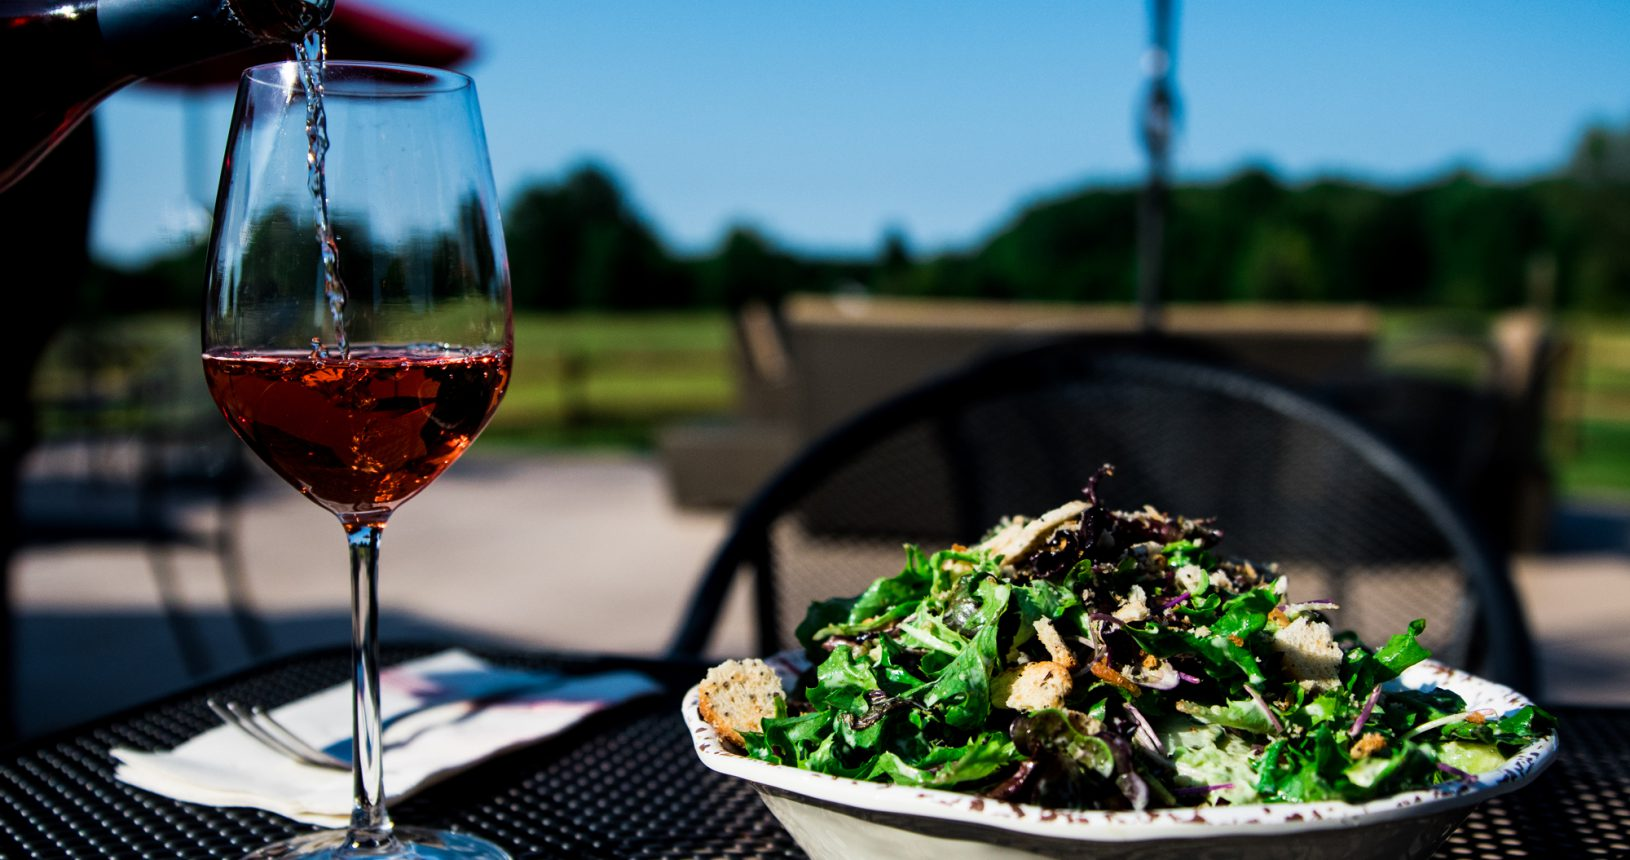 Sandy-Ridge-Salad-and-Wine-Outdoors-Ohio